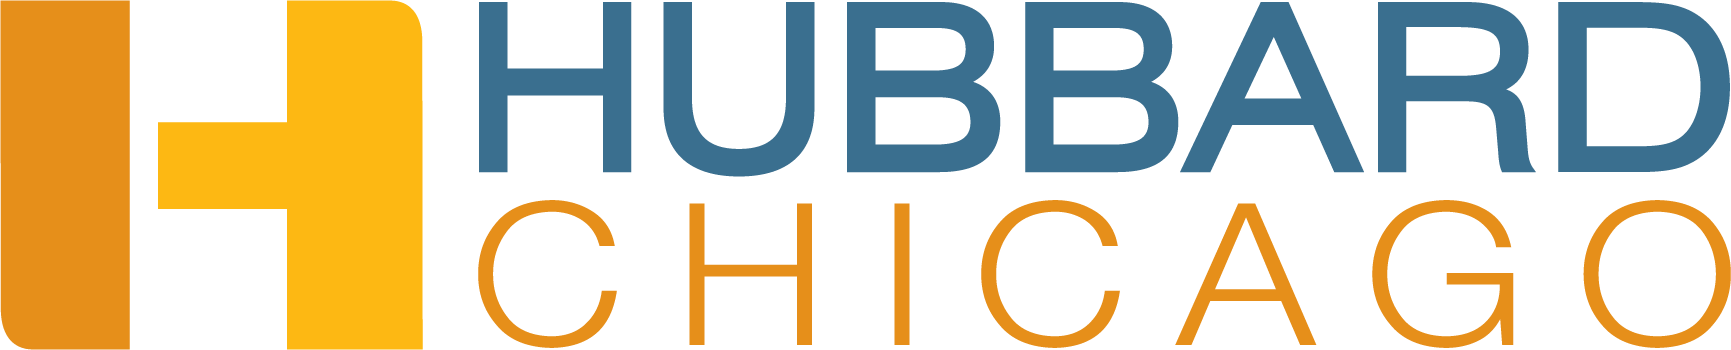 HUBBARD_Chicago_logo.png